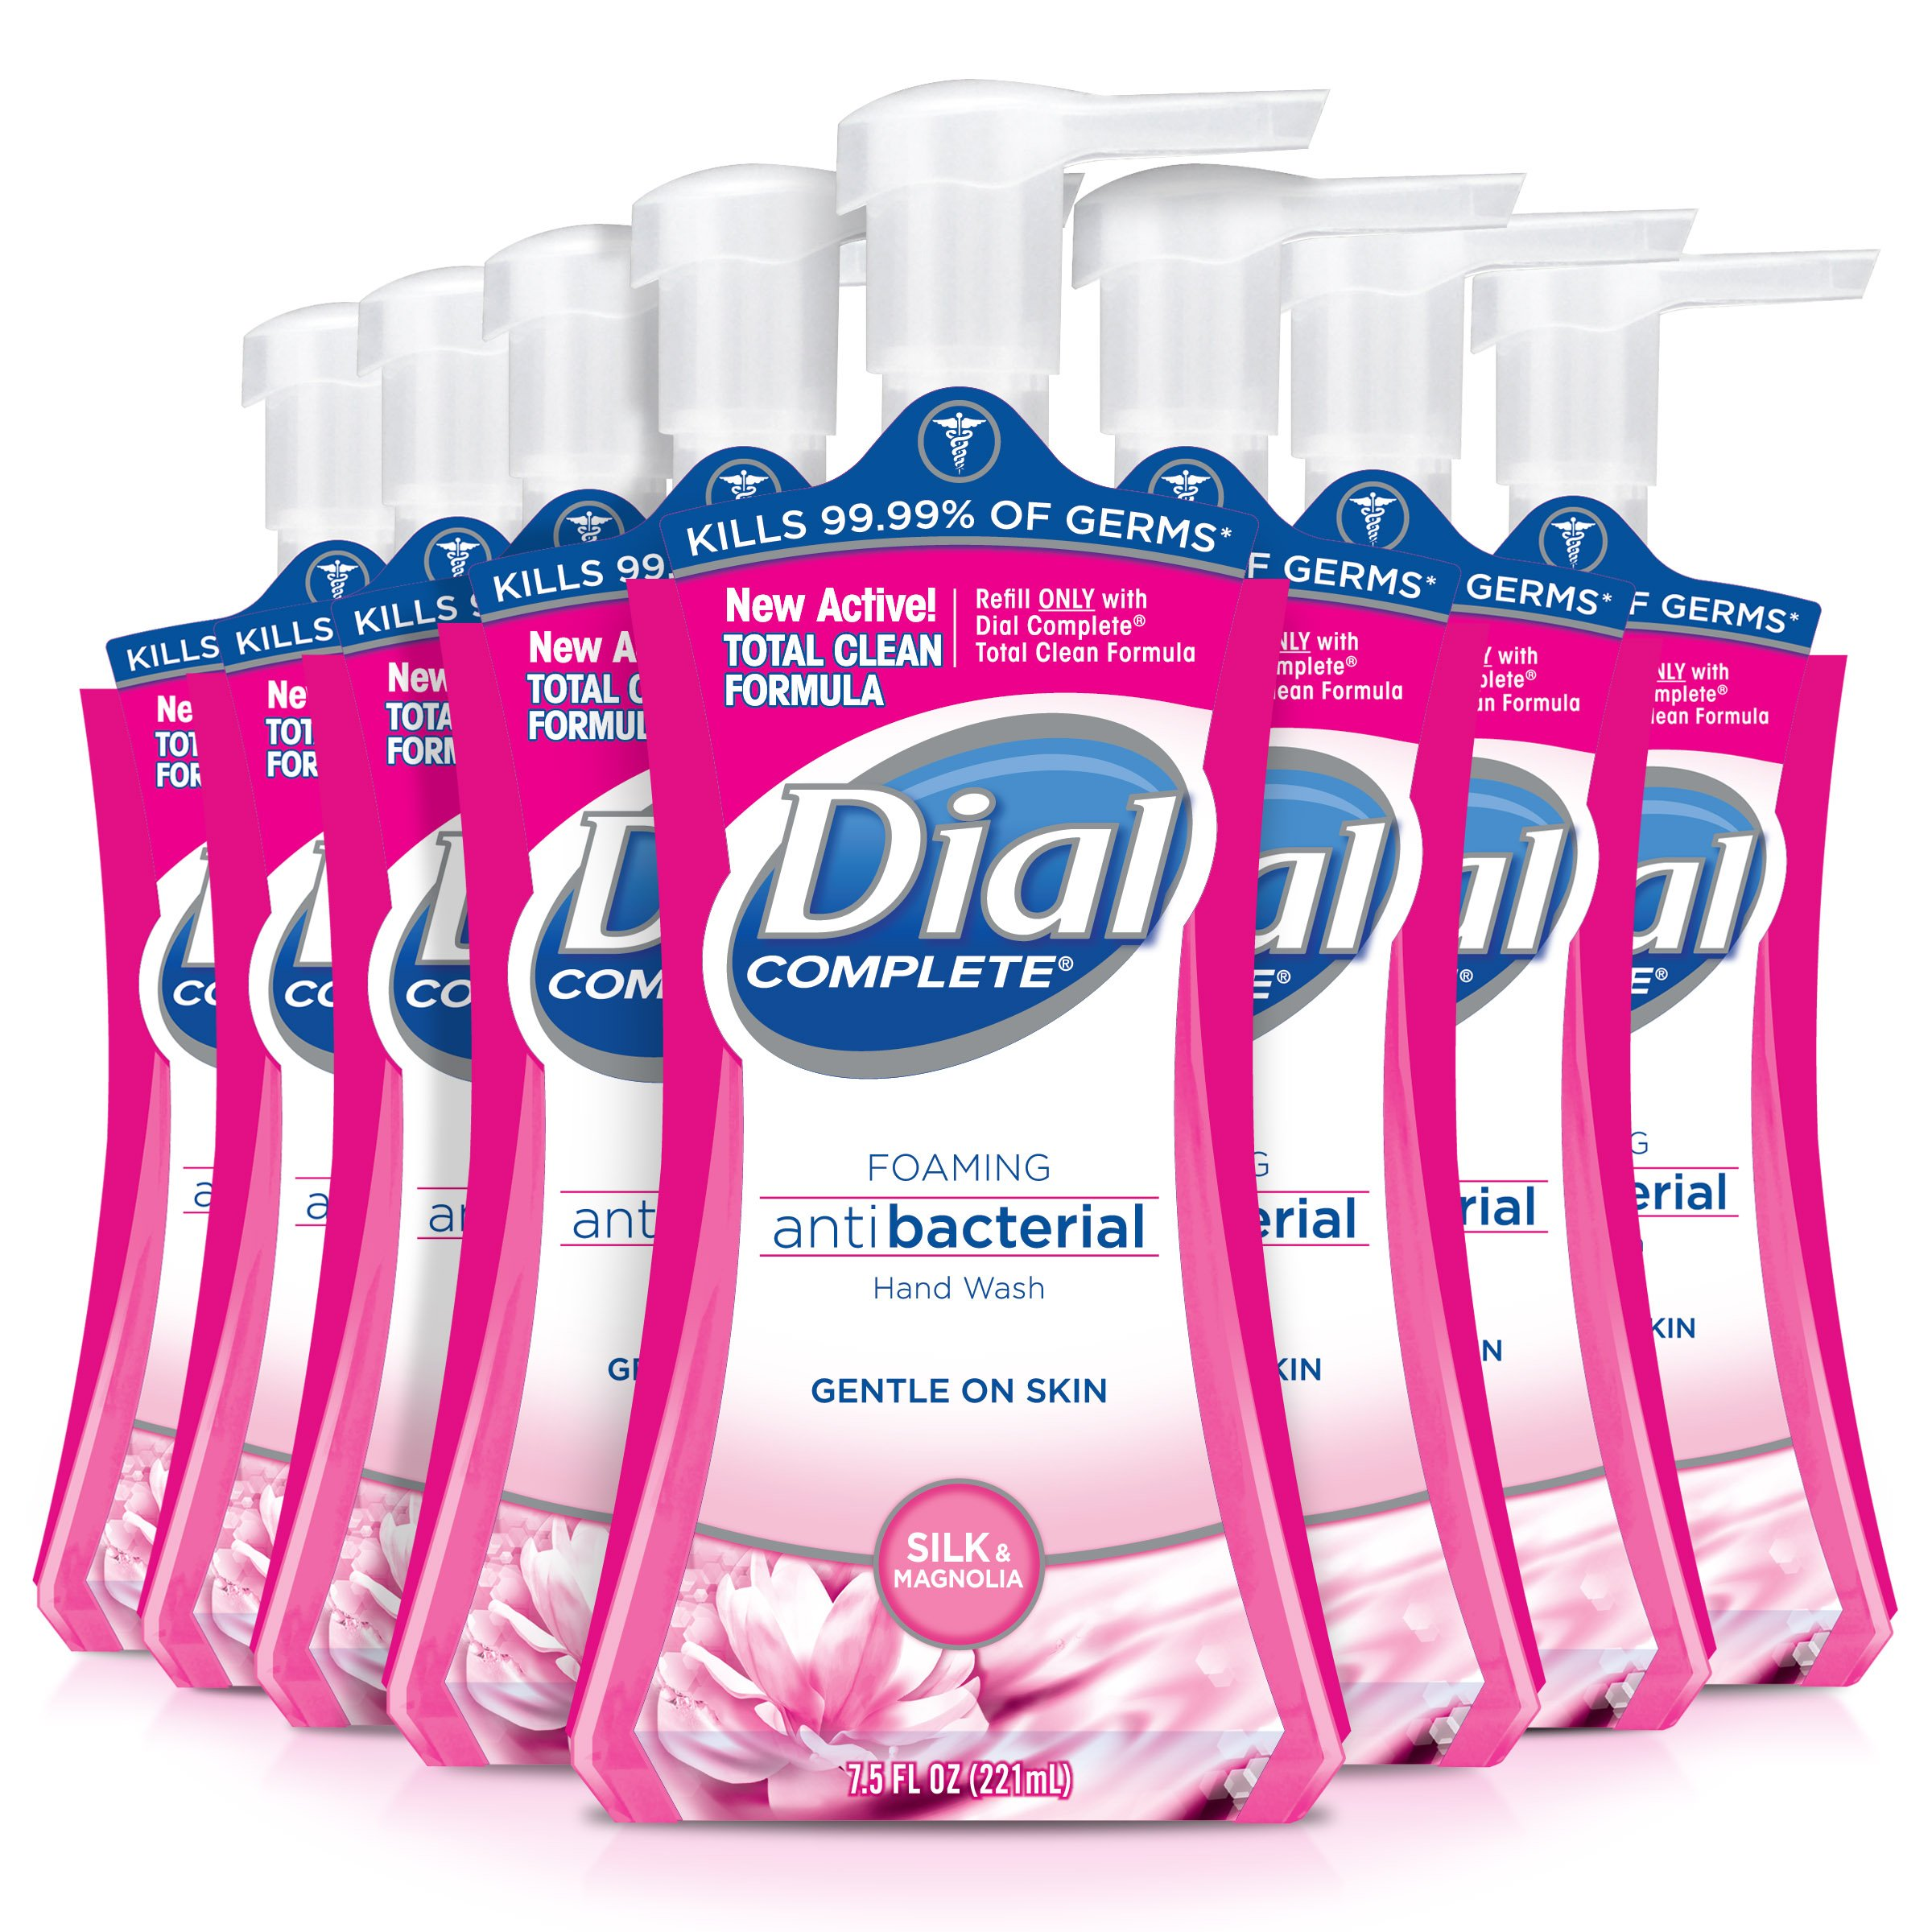 Dial Complete Antibacterial Foaming Hand Soap, Silk & Magnolia, 7.5 Fluid Ounces (Pack of 8)